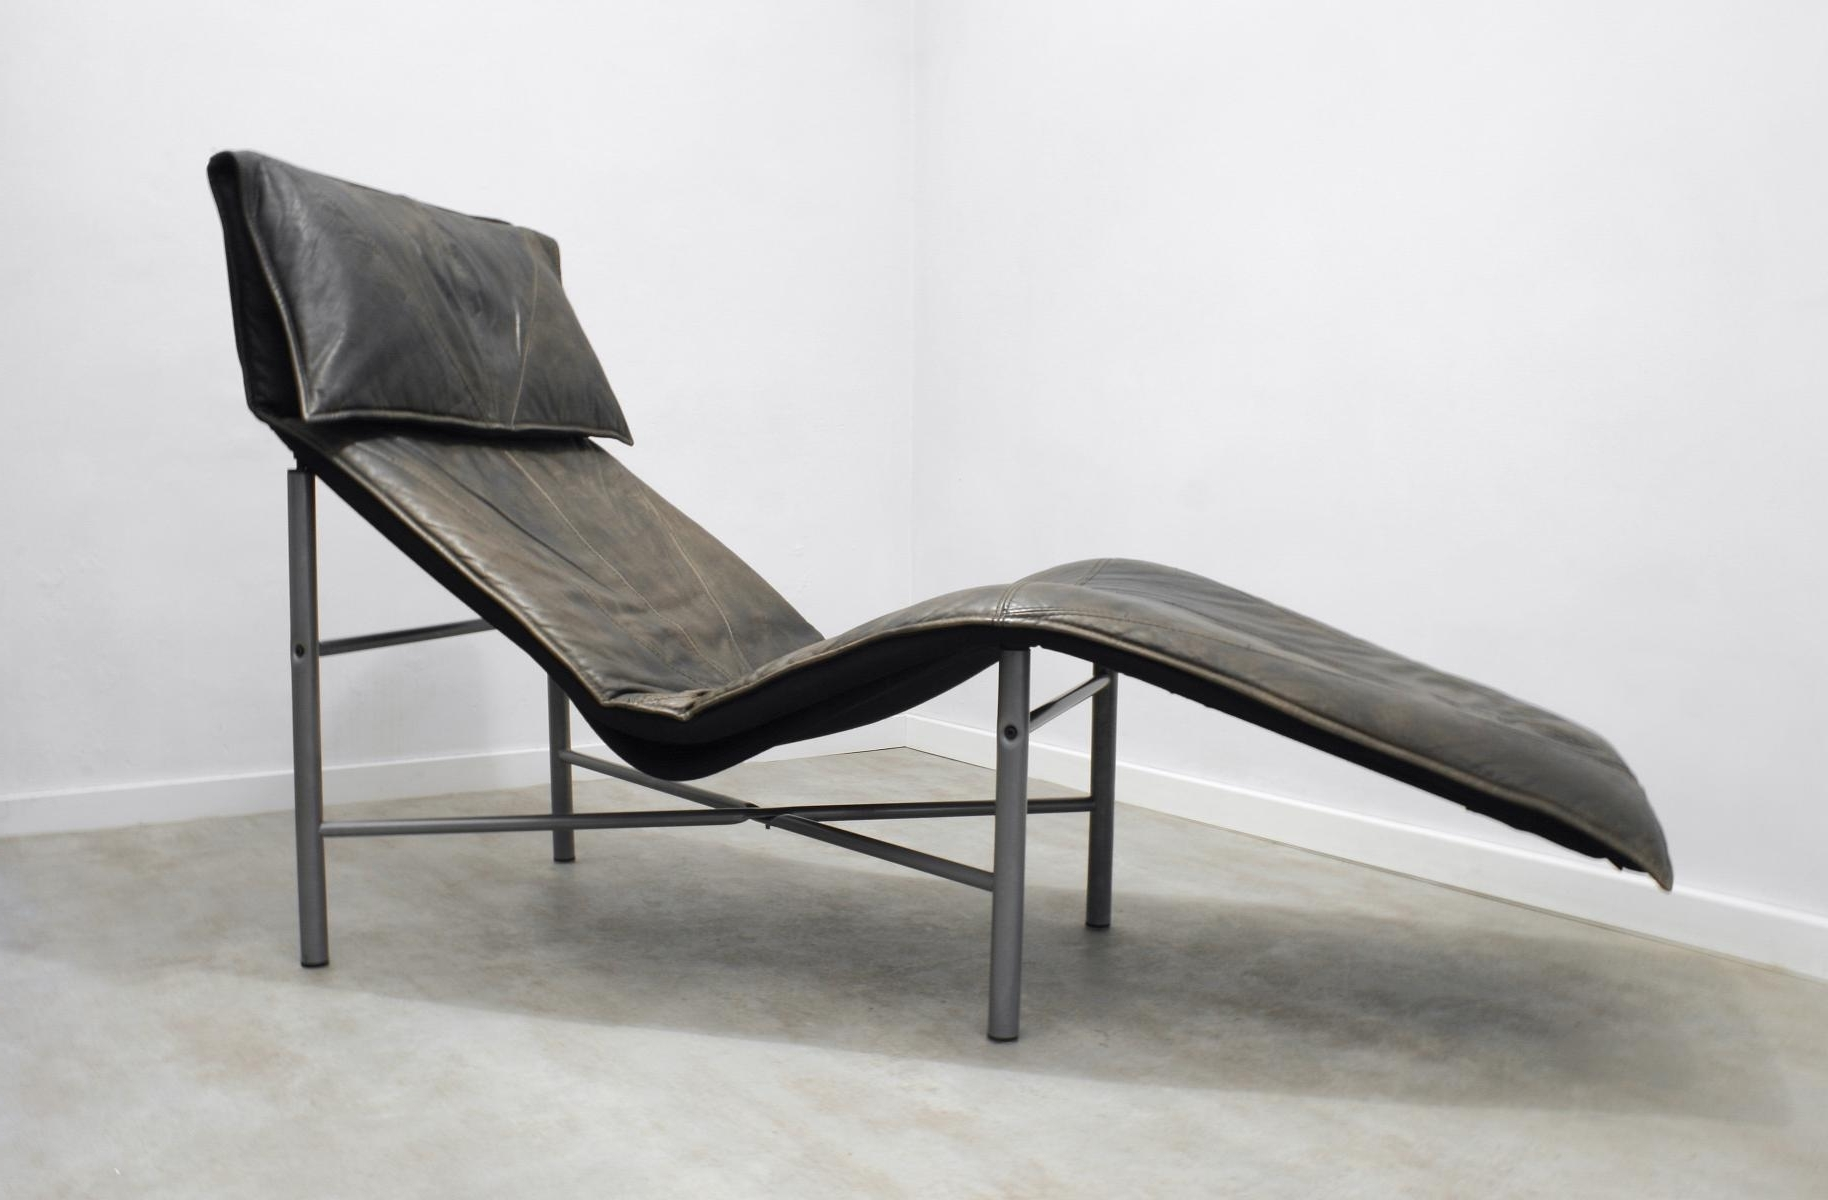 Well Known Ikea Chaise Lounges In Brown Leather Skye Chaise Loungetord Björklund For Ikea, 1980S (View 15 of 15)